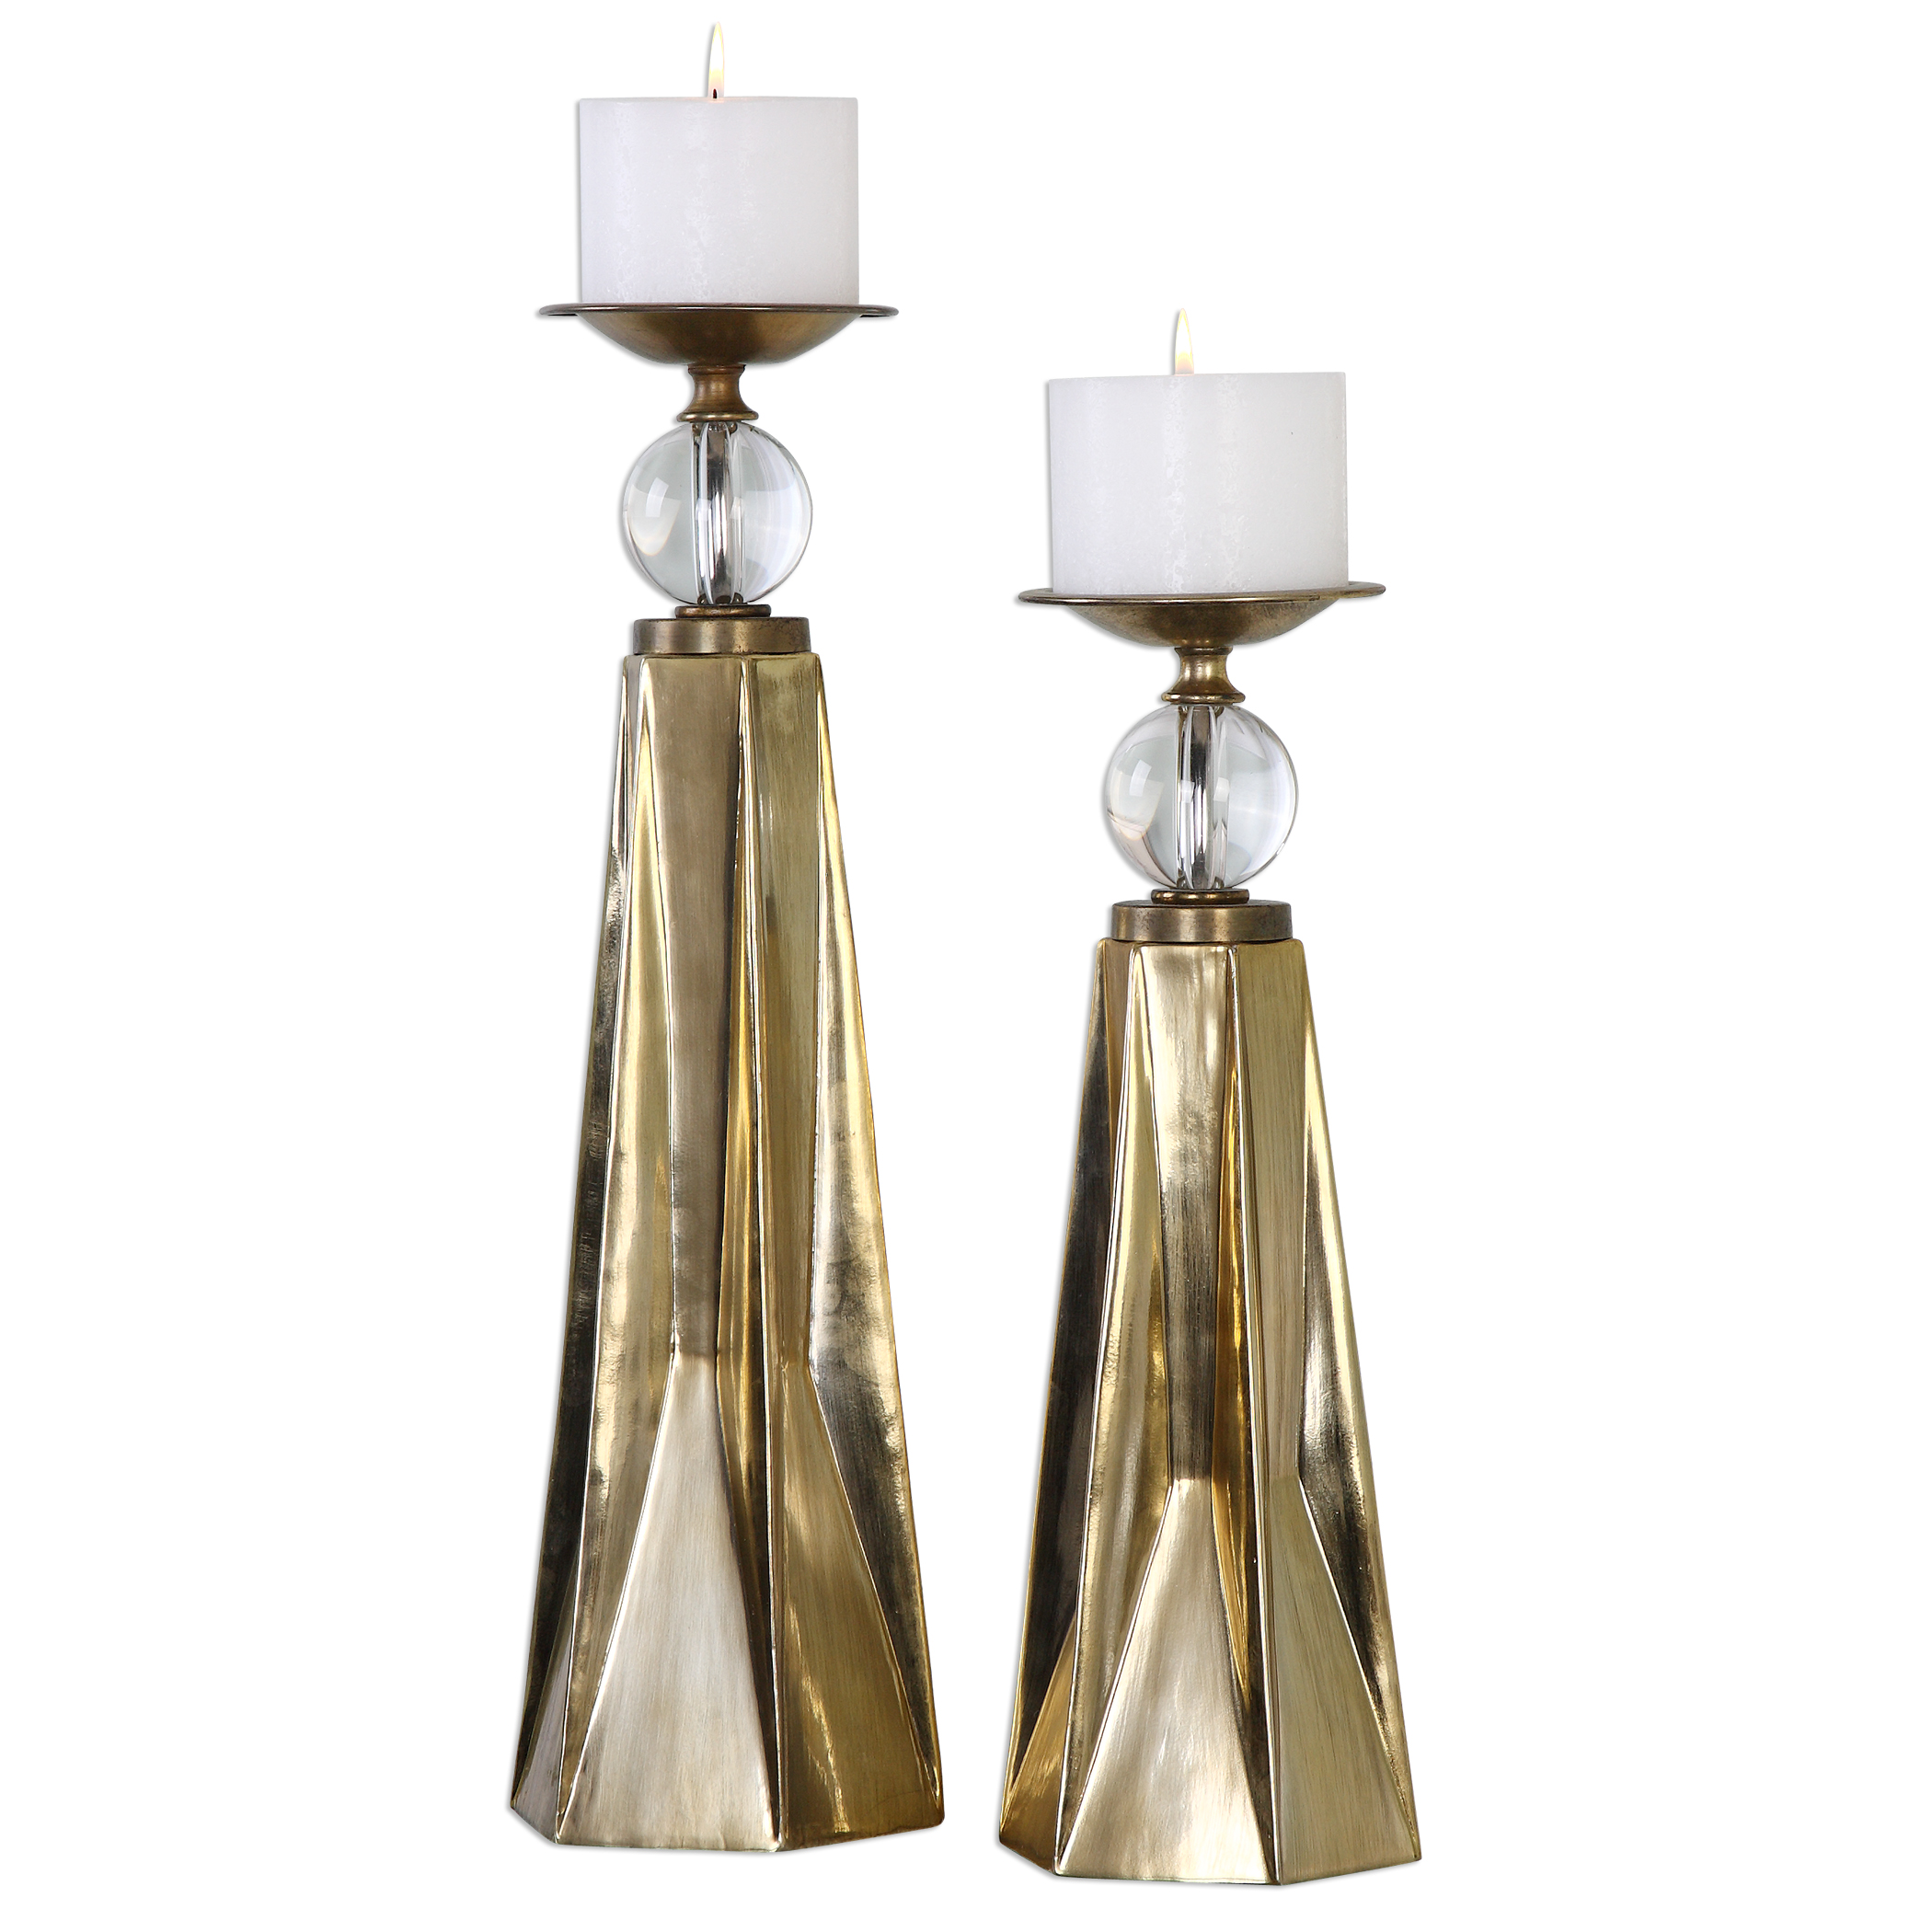 Uttermost Accessories Carlino Bronze Candleholders, S/2 - Item Number: 20068